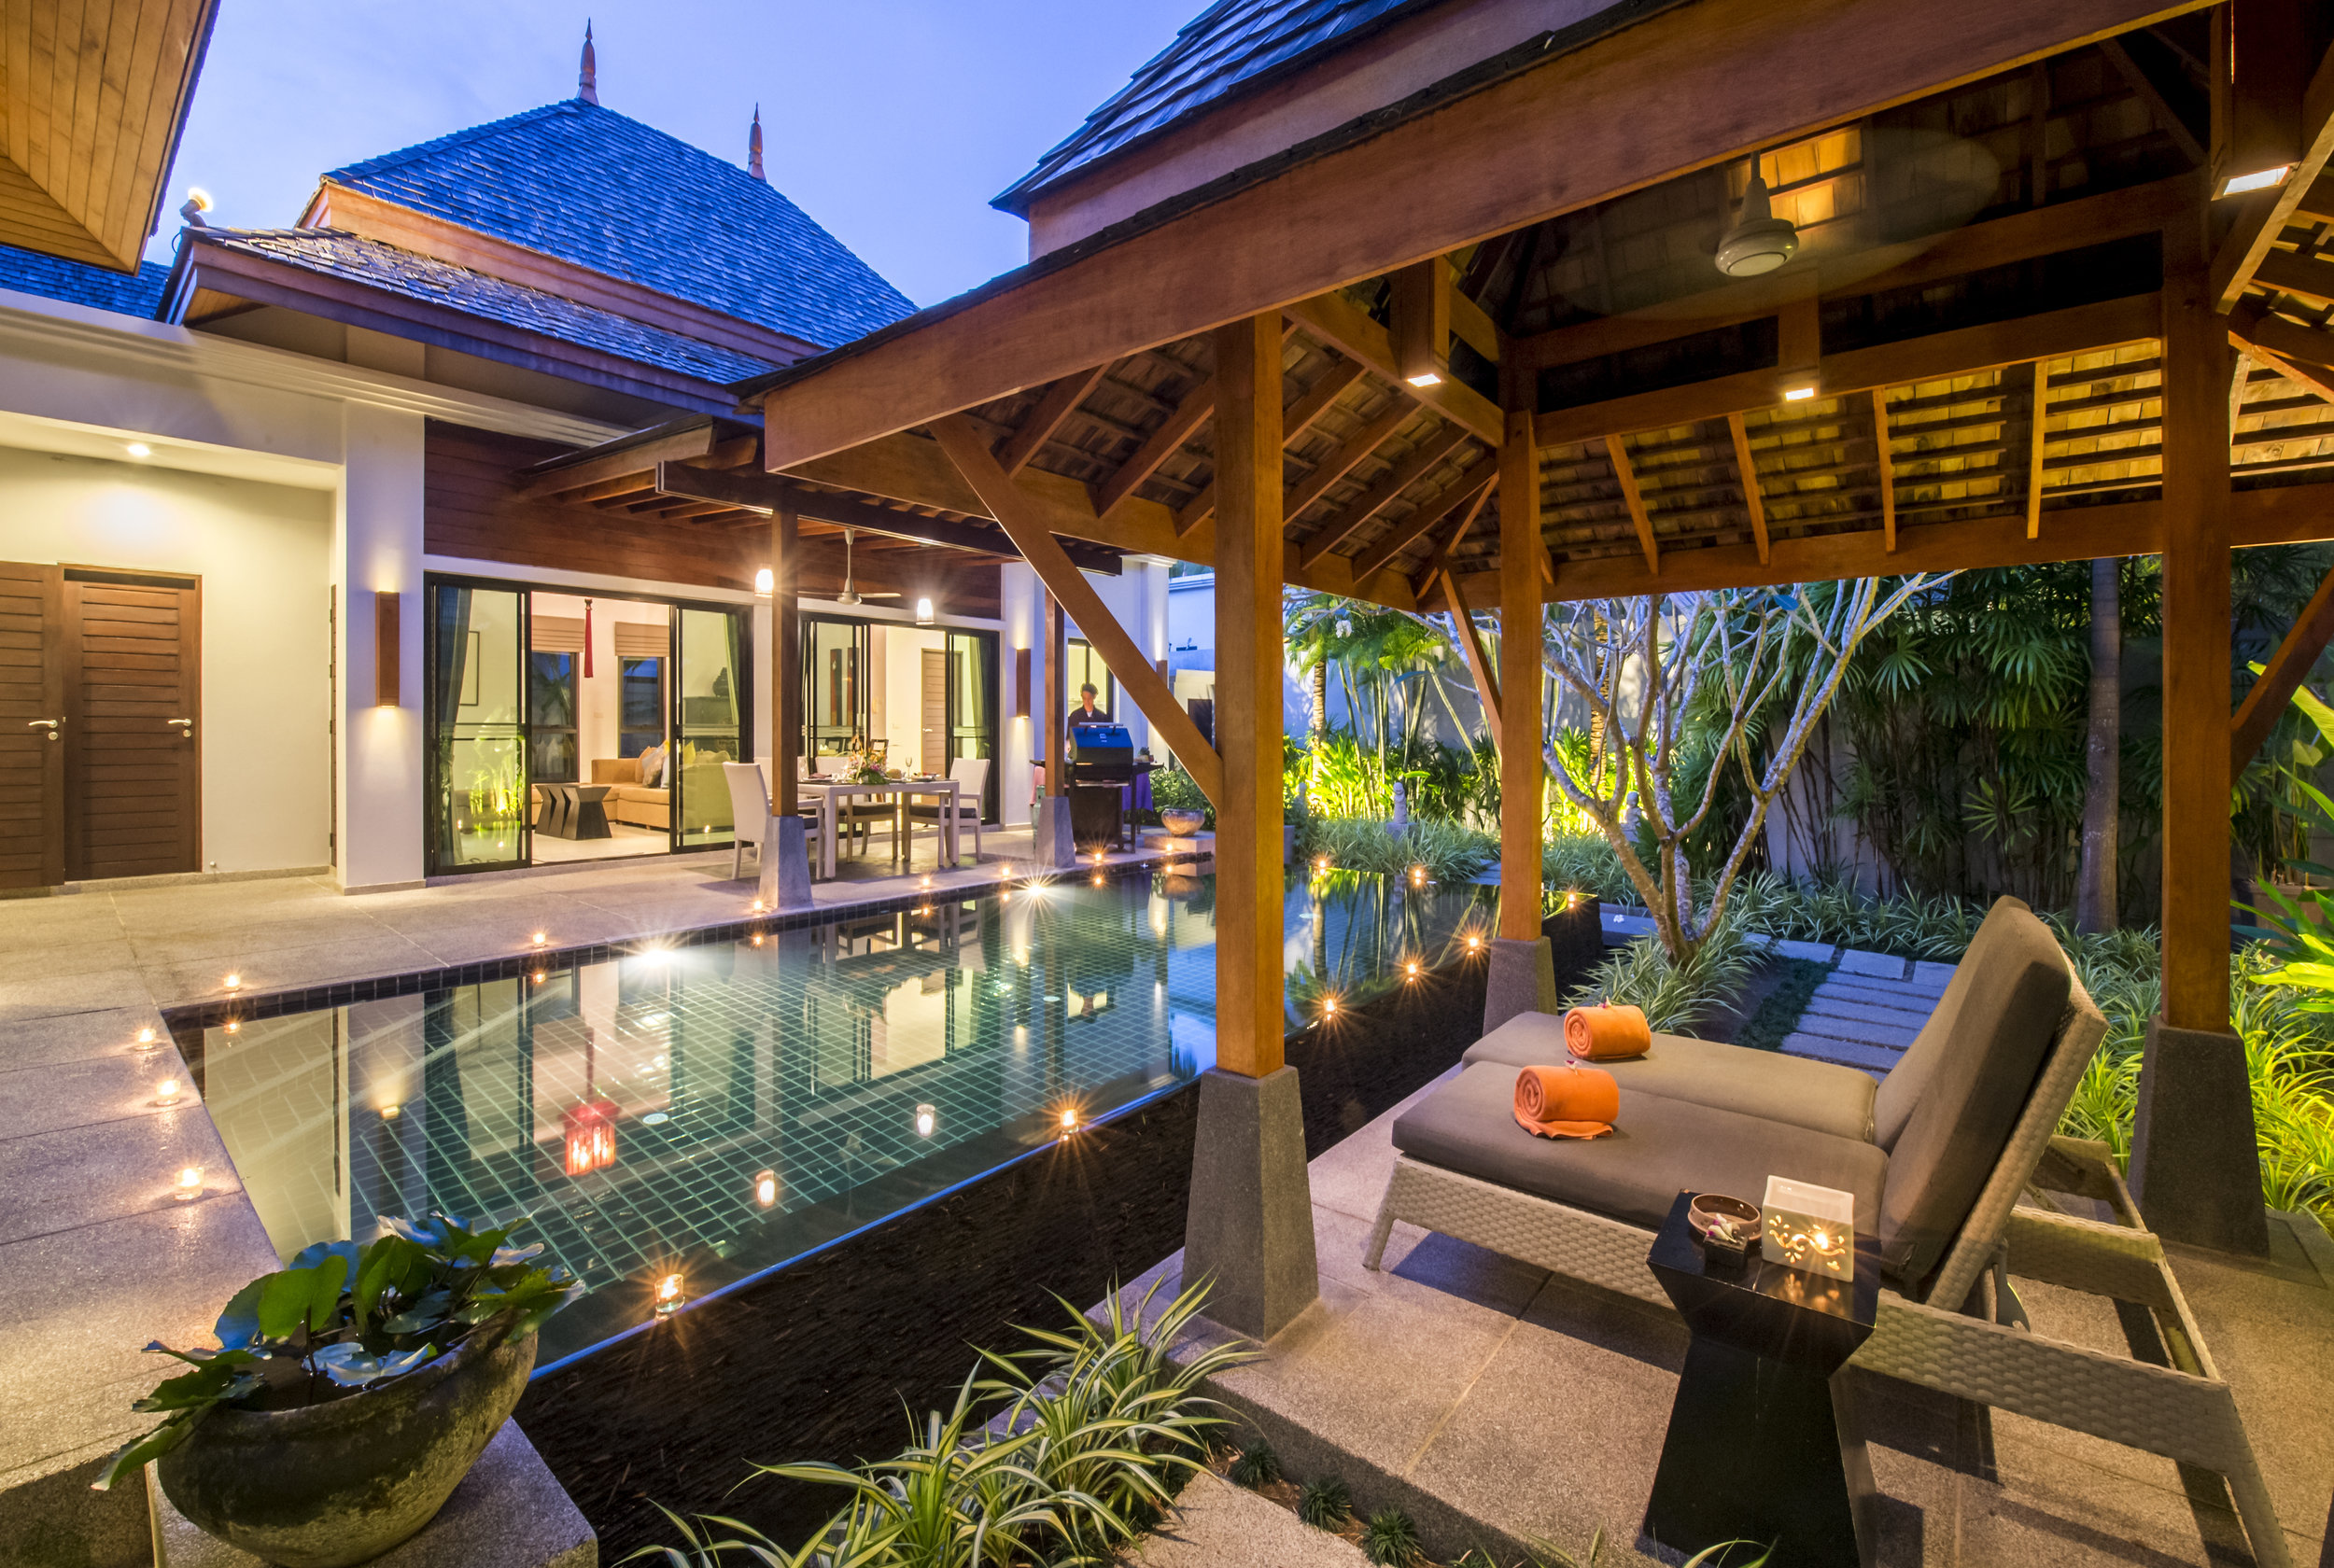 Terrace, Garden and Pool